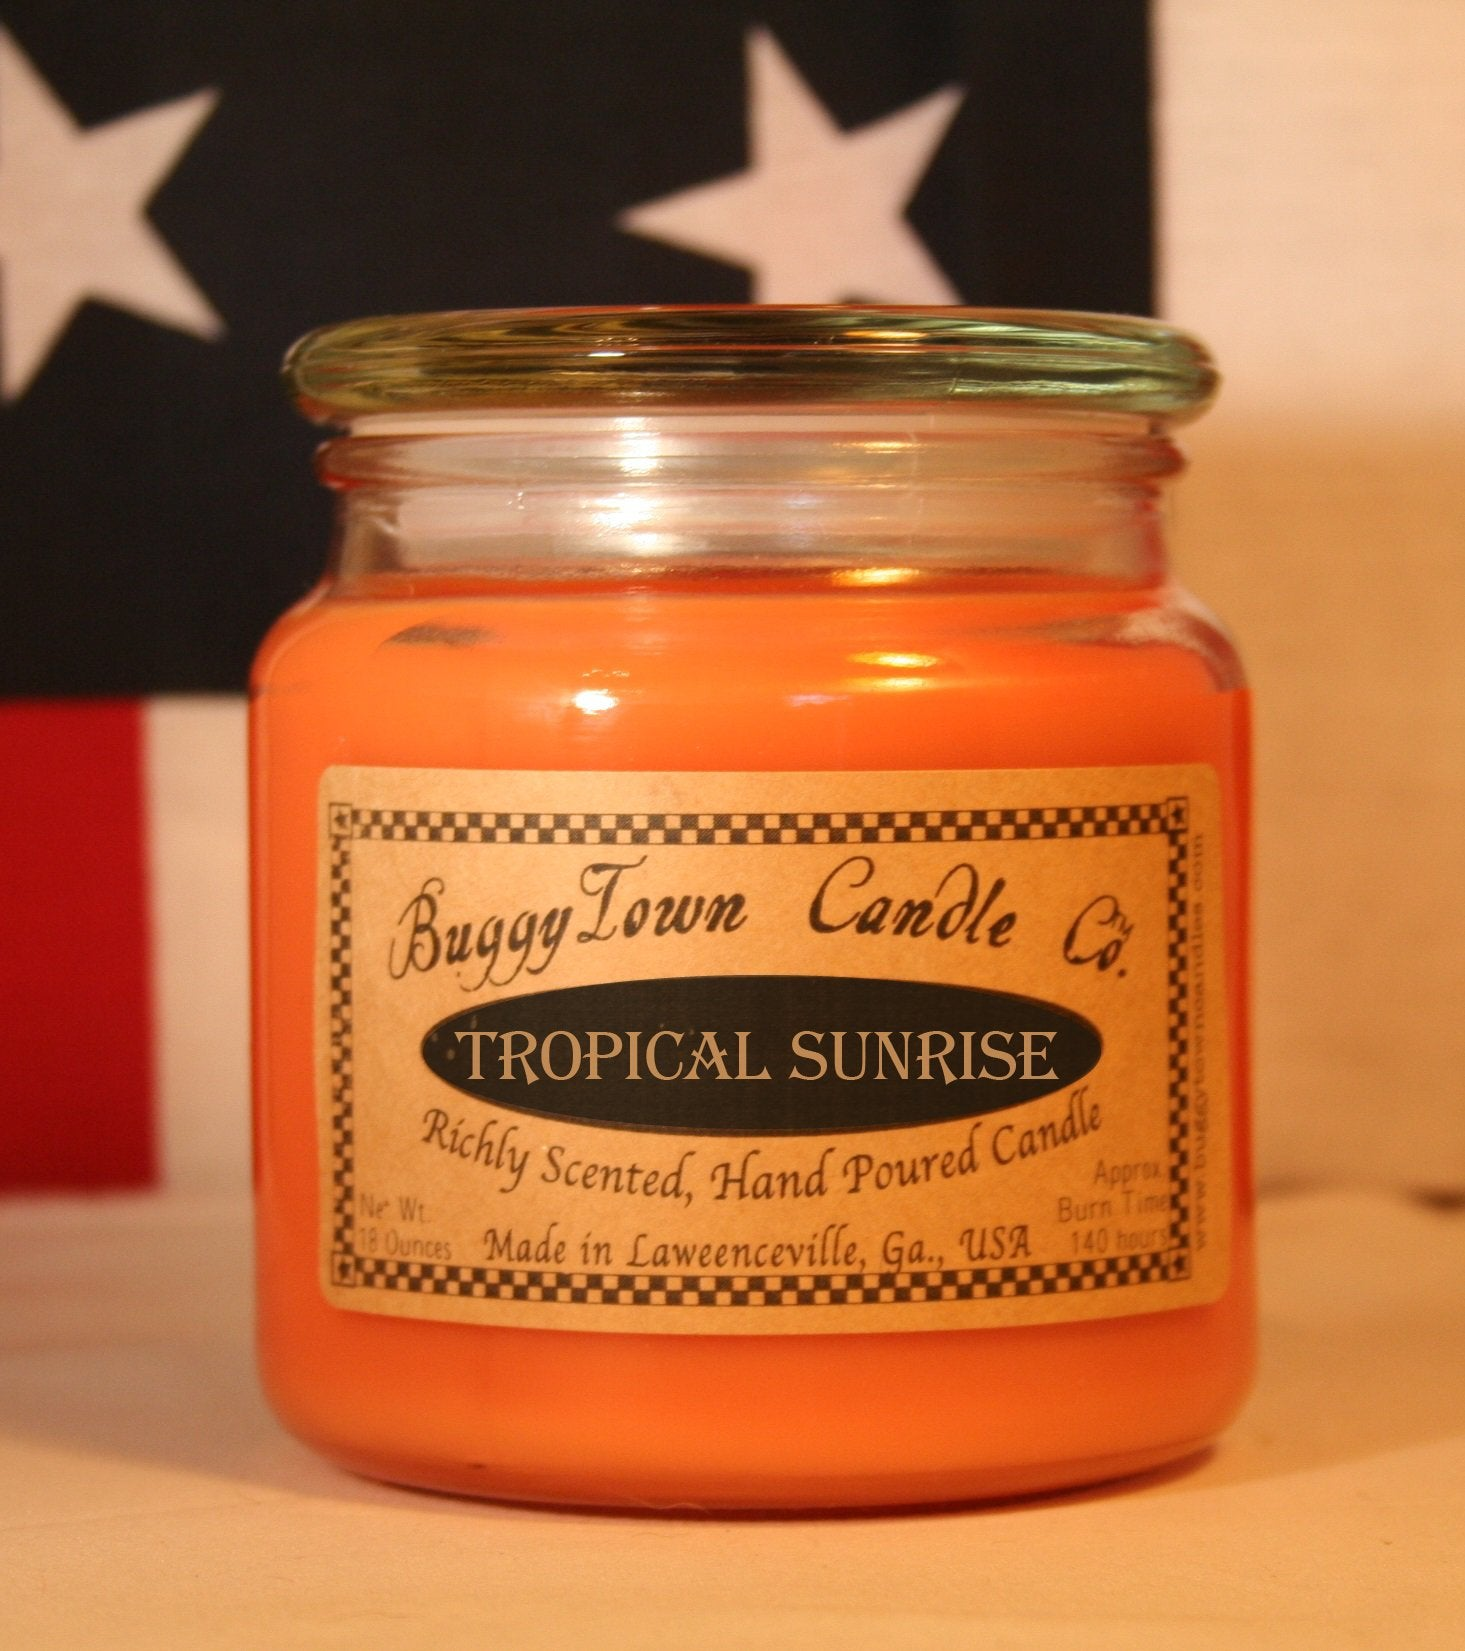 Tropical Sunrise Candles